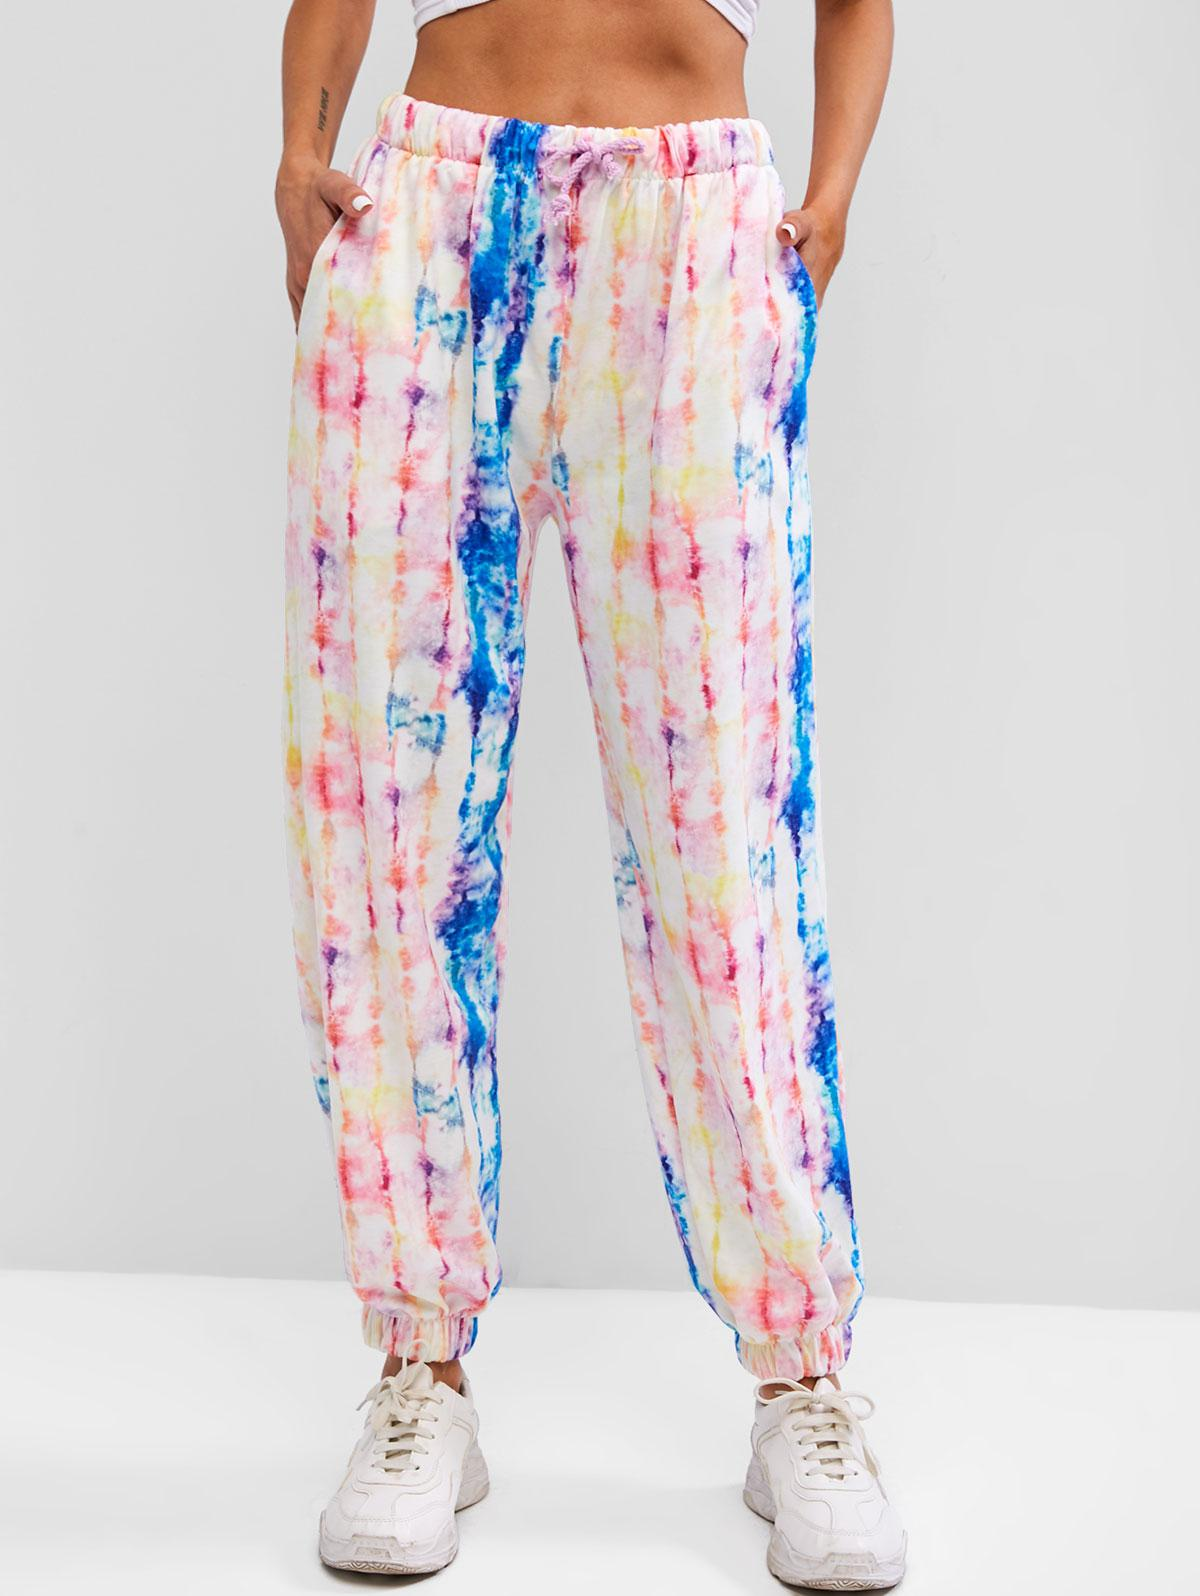 Drawstring Colorful Tie Dye Jogger Sweatpants